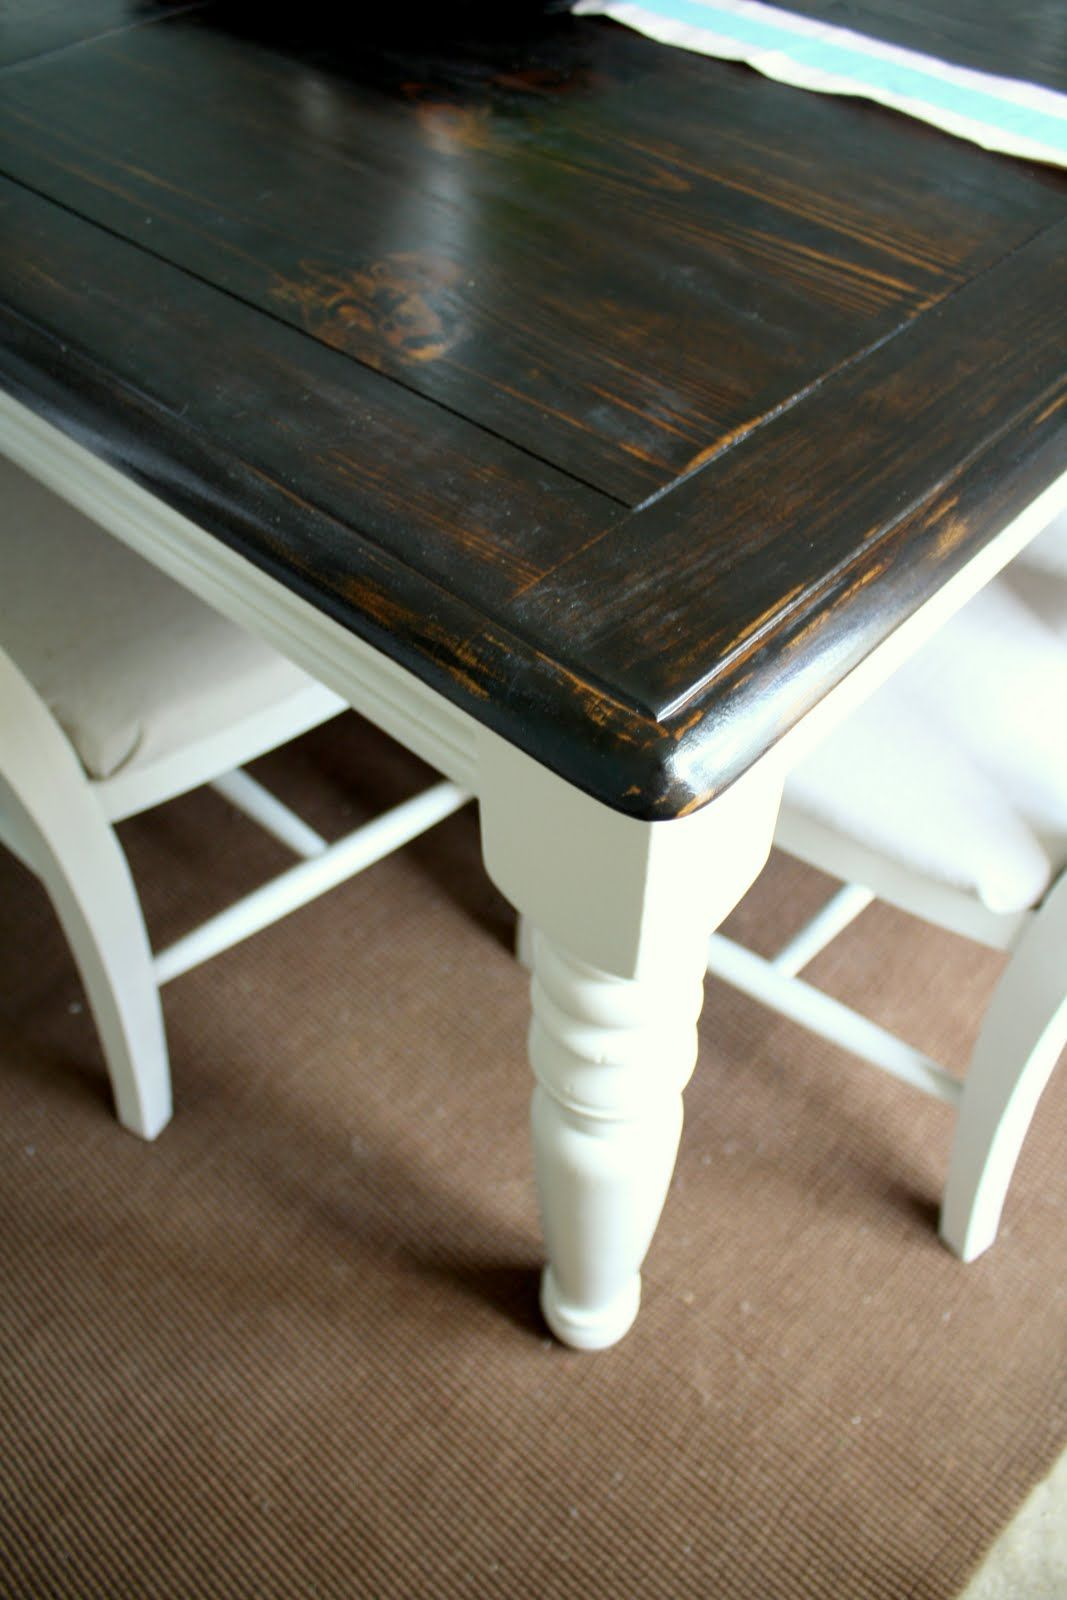 Dining Room Table Refinishing Ideas Part - 21: Burlap U0026 Lace: Refinishing The Dining Room Table: Could Be An Idea To Paint  Our Drab Brown Tables Legs White.